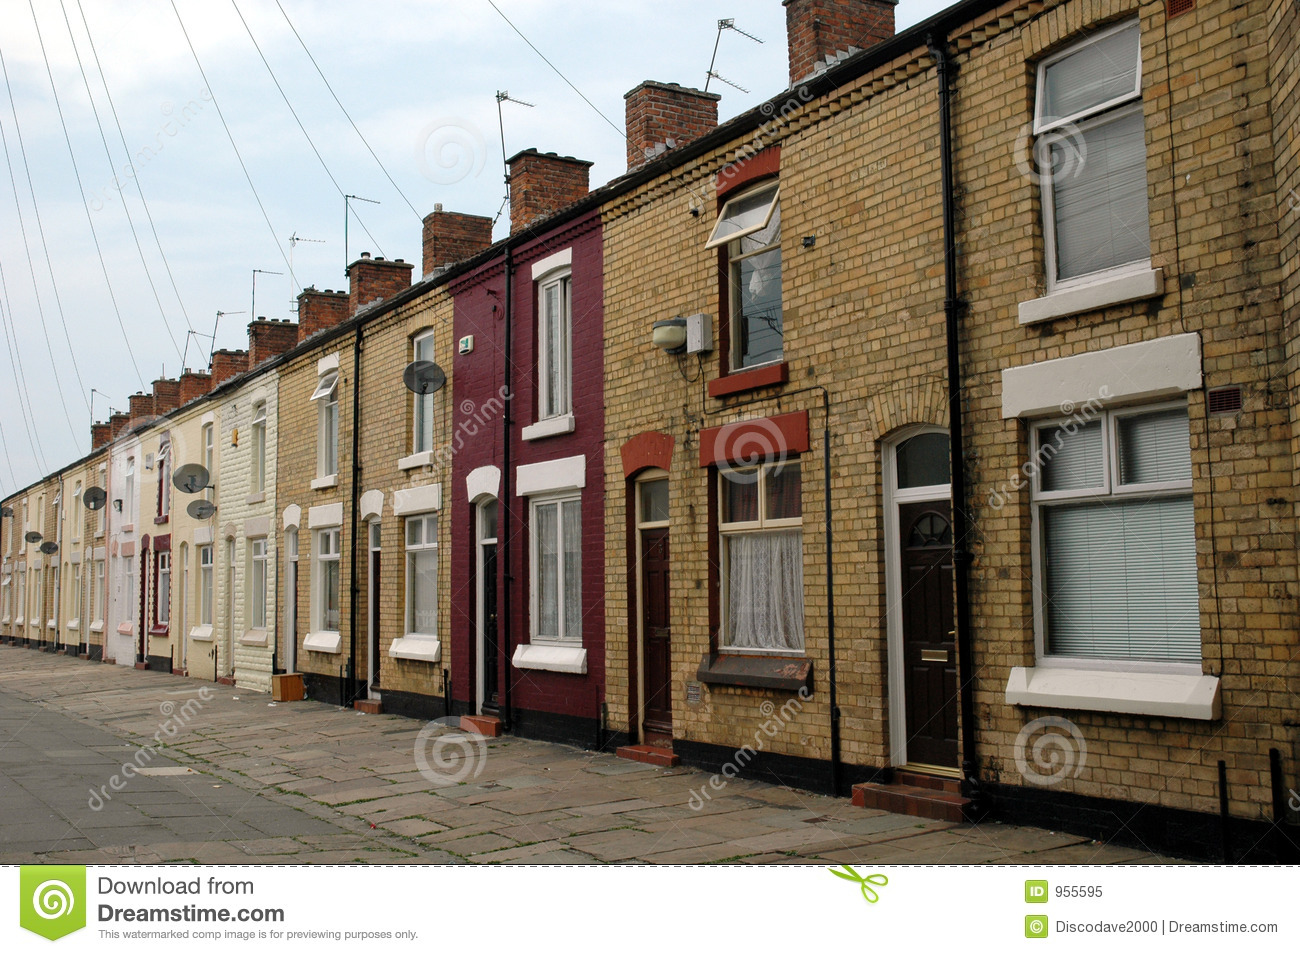 Terrace houses royalty free stock photo image 955595 for Terrace house season 3